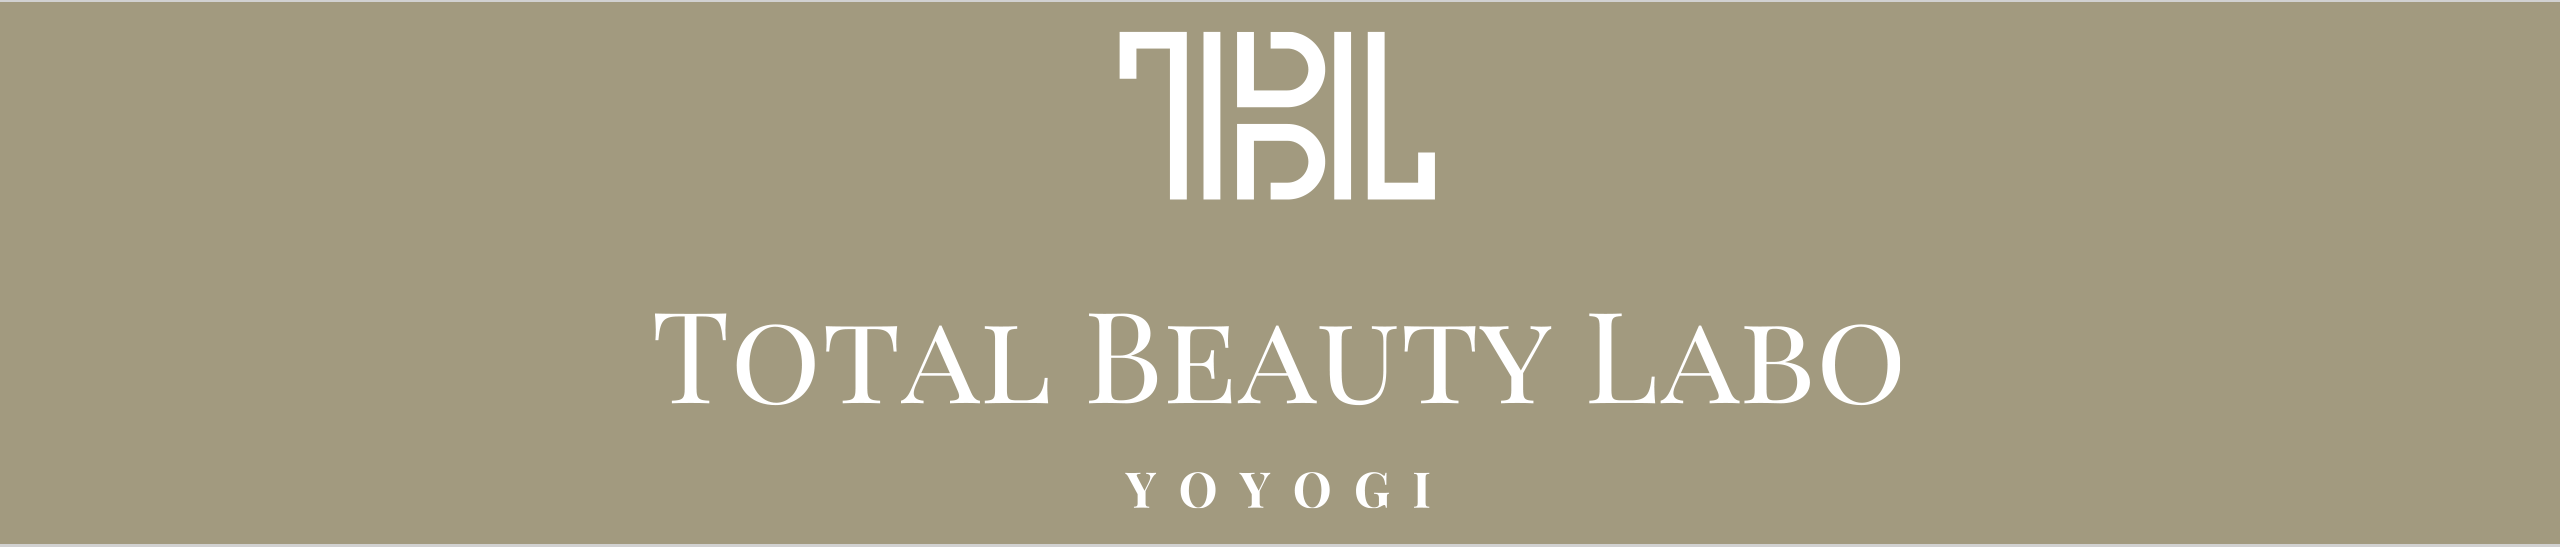 Total Beauty Labo